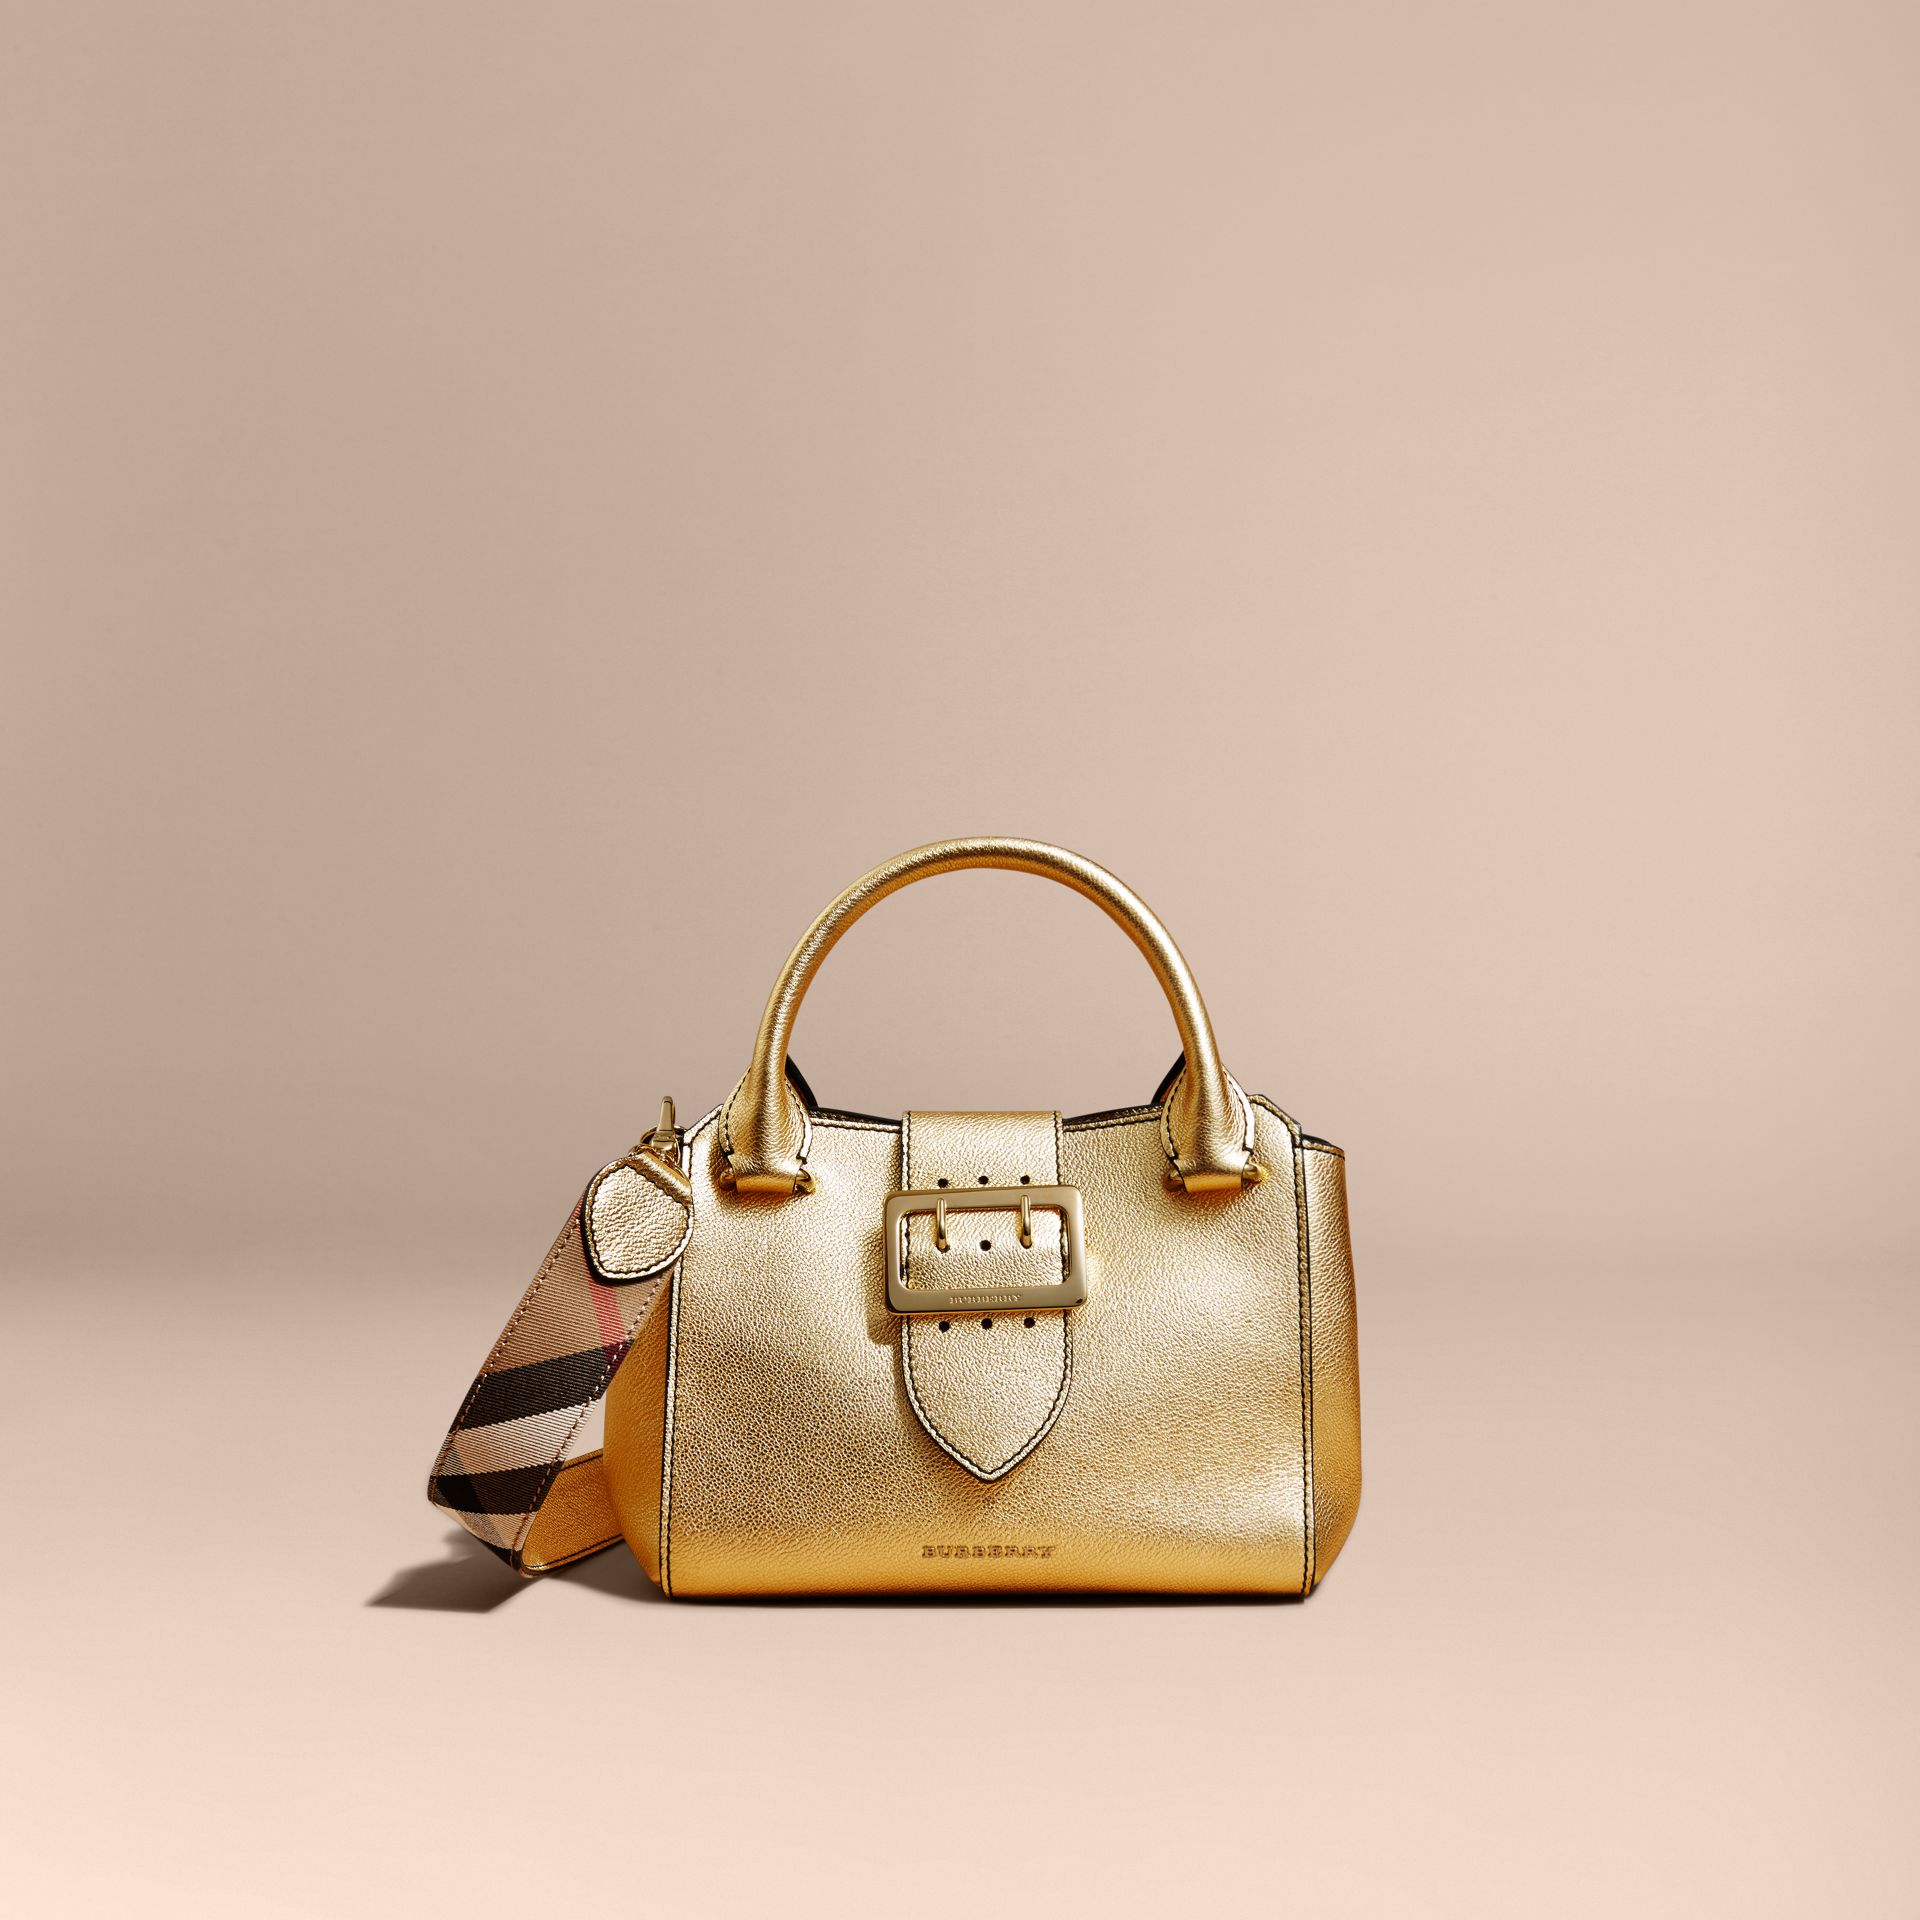 Gold The Small Buckle Tote in Metallic Leather Gold - gallery image 8